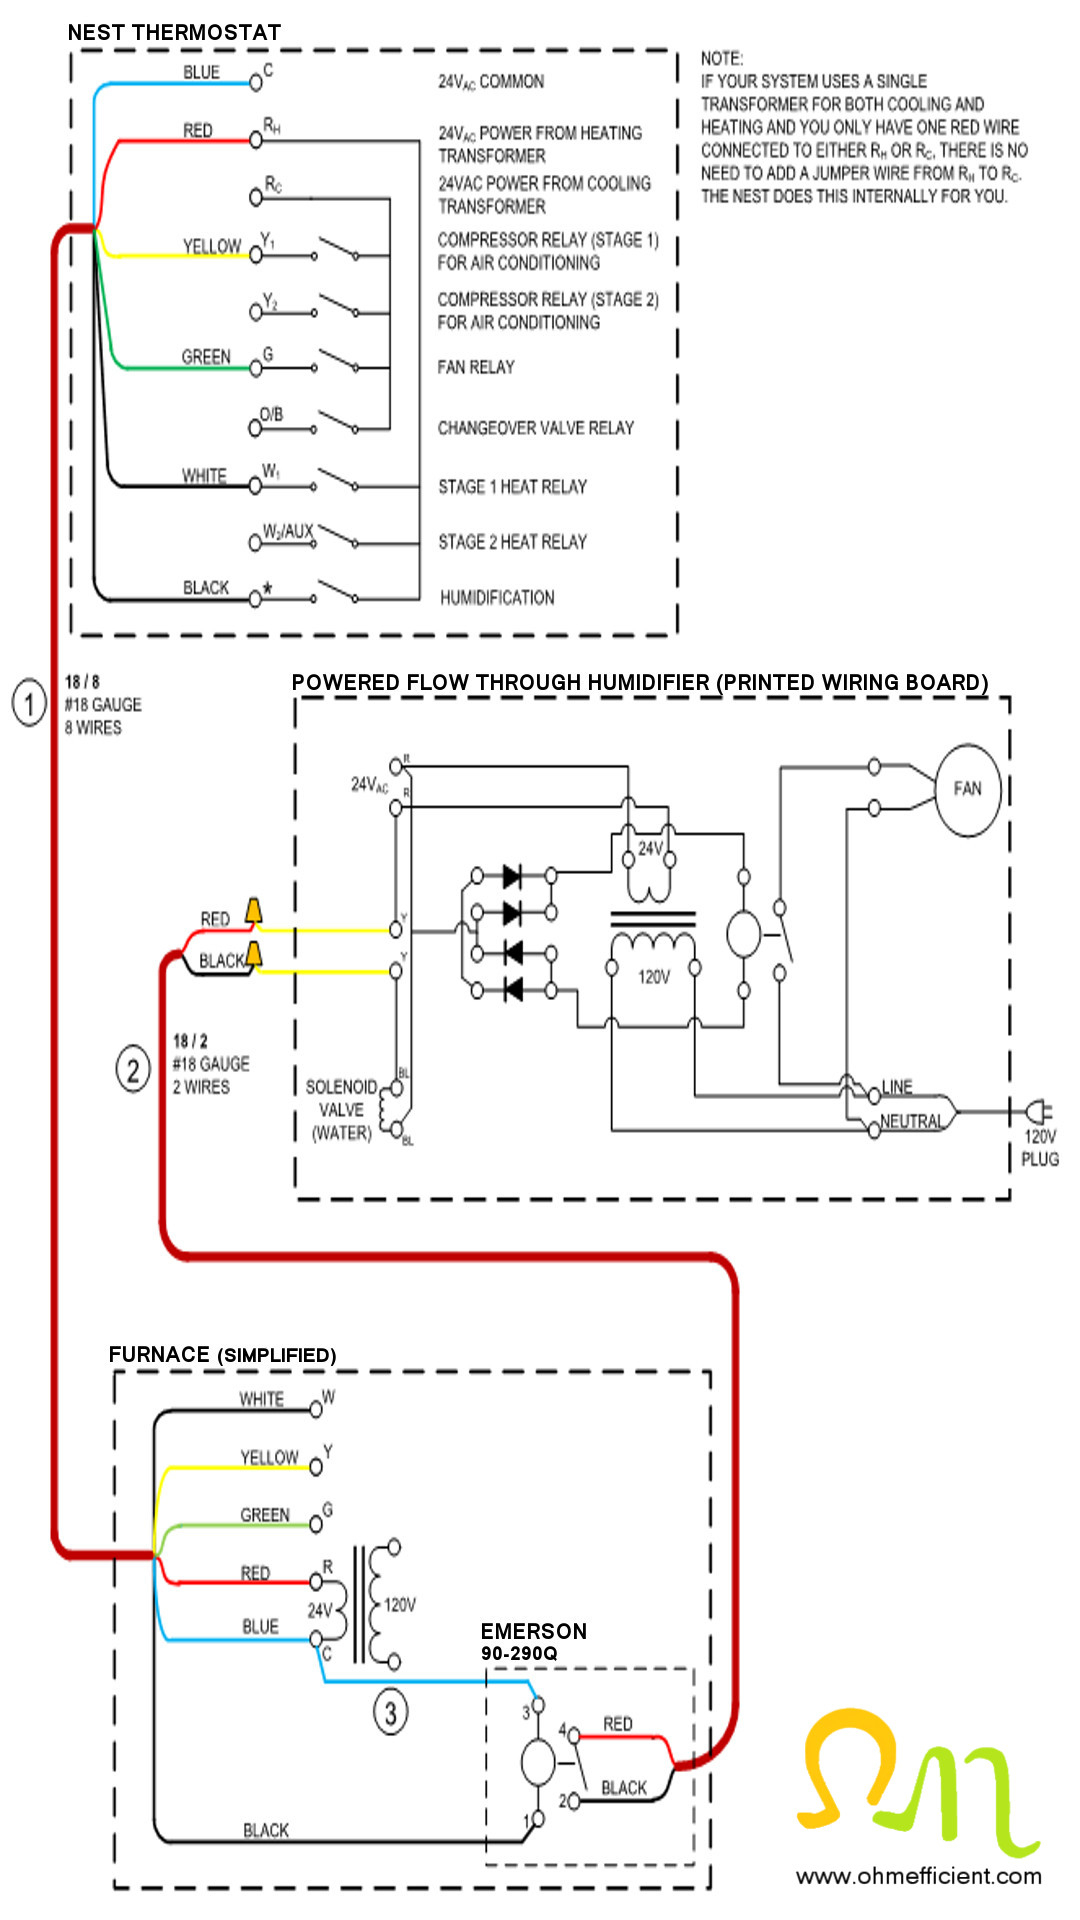 Trane Humidistat Wiring Diagram Wiring Diagram Gp